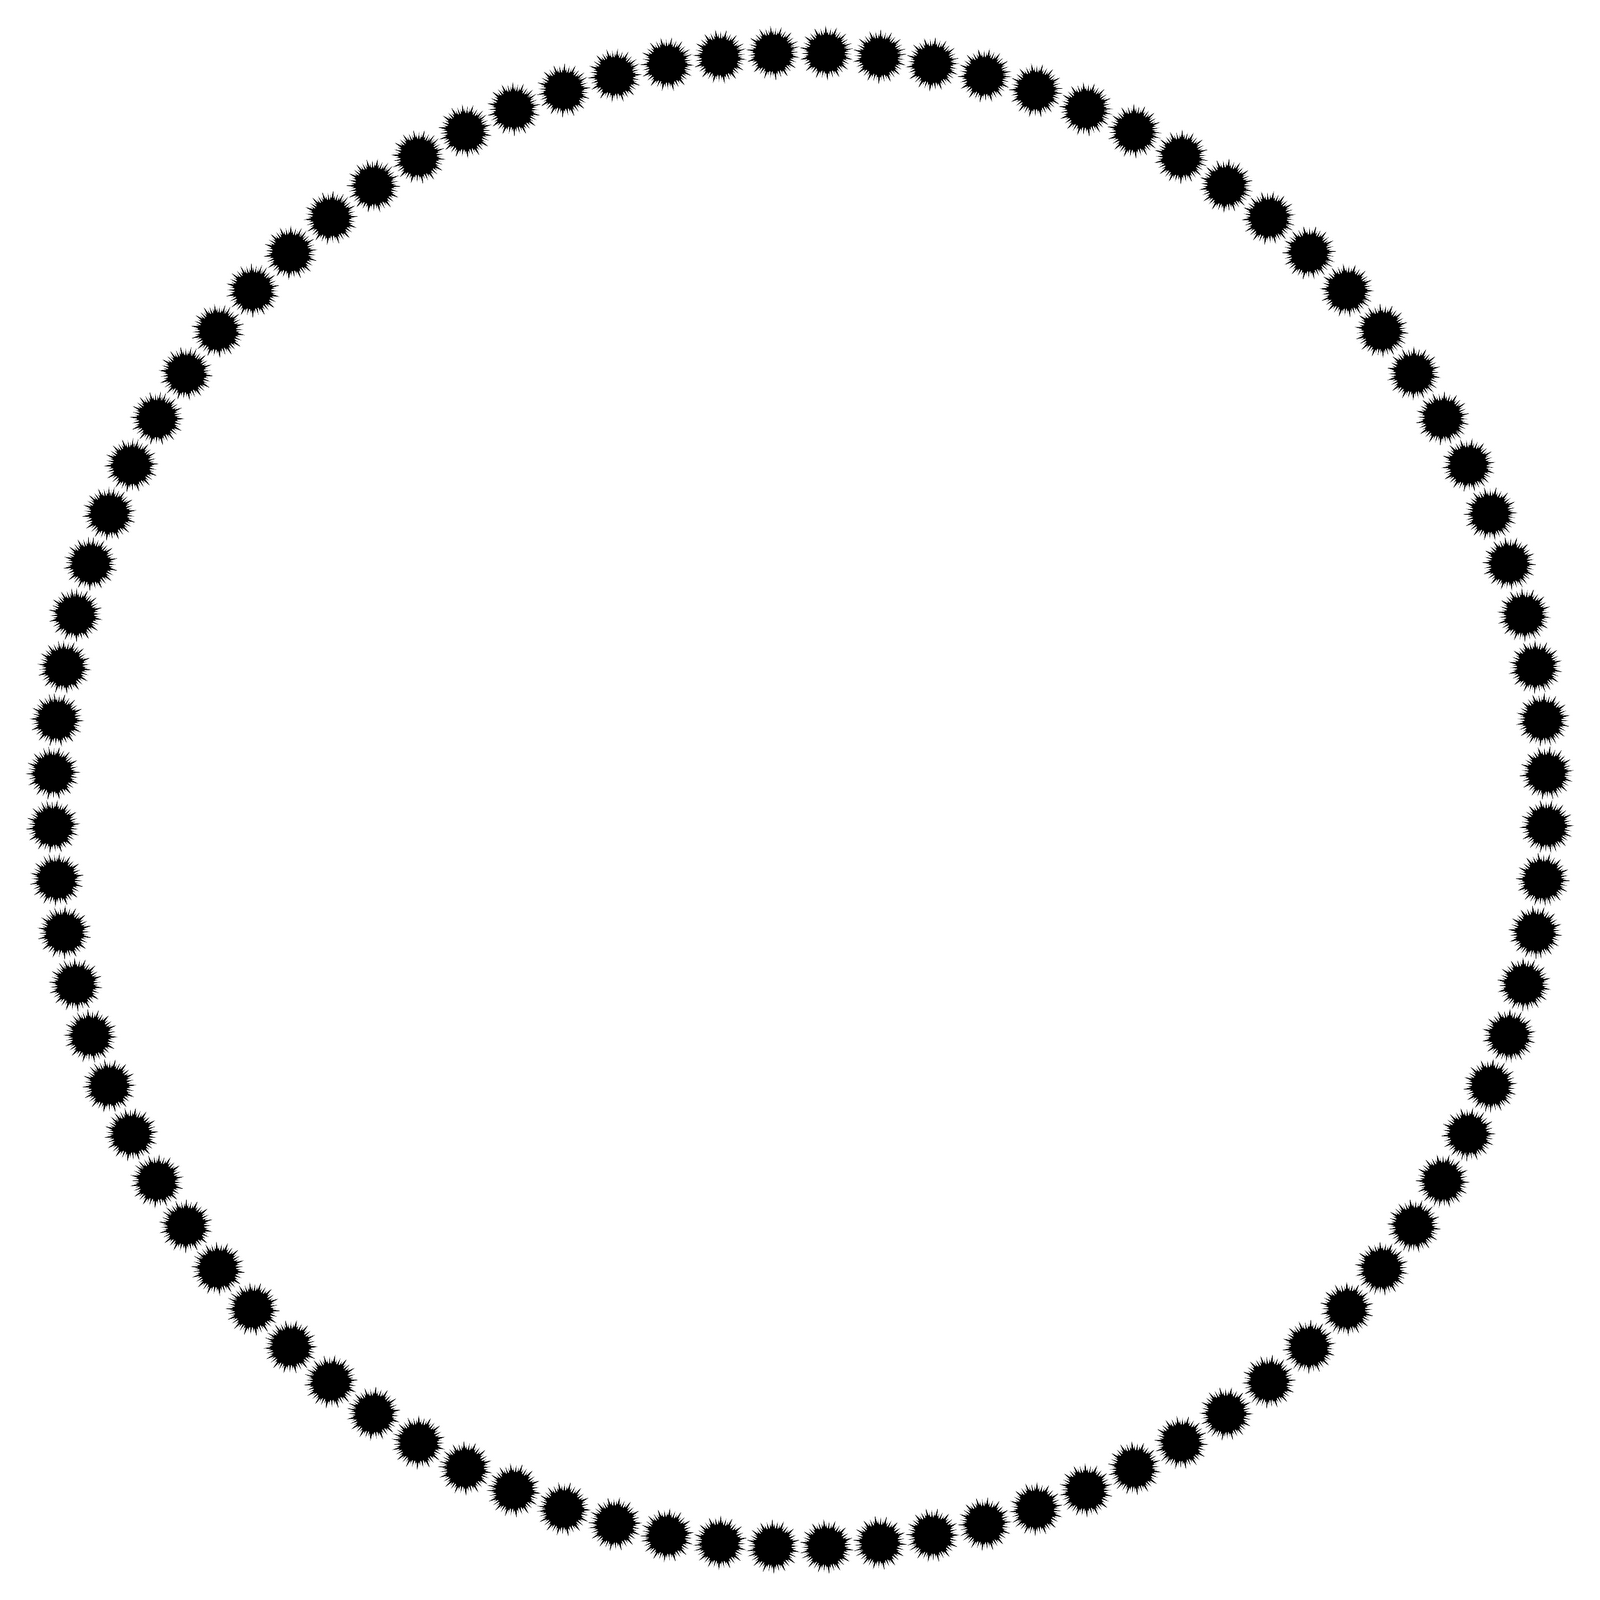 Circle clipart borders. Free border cliparts download